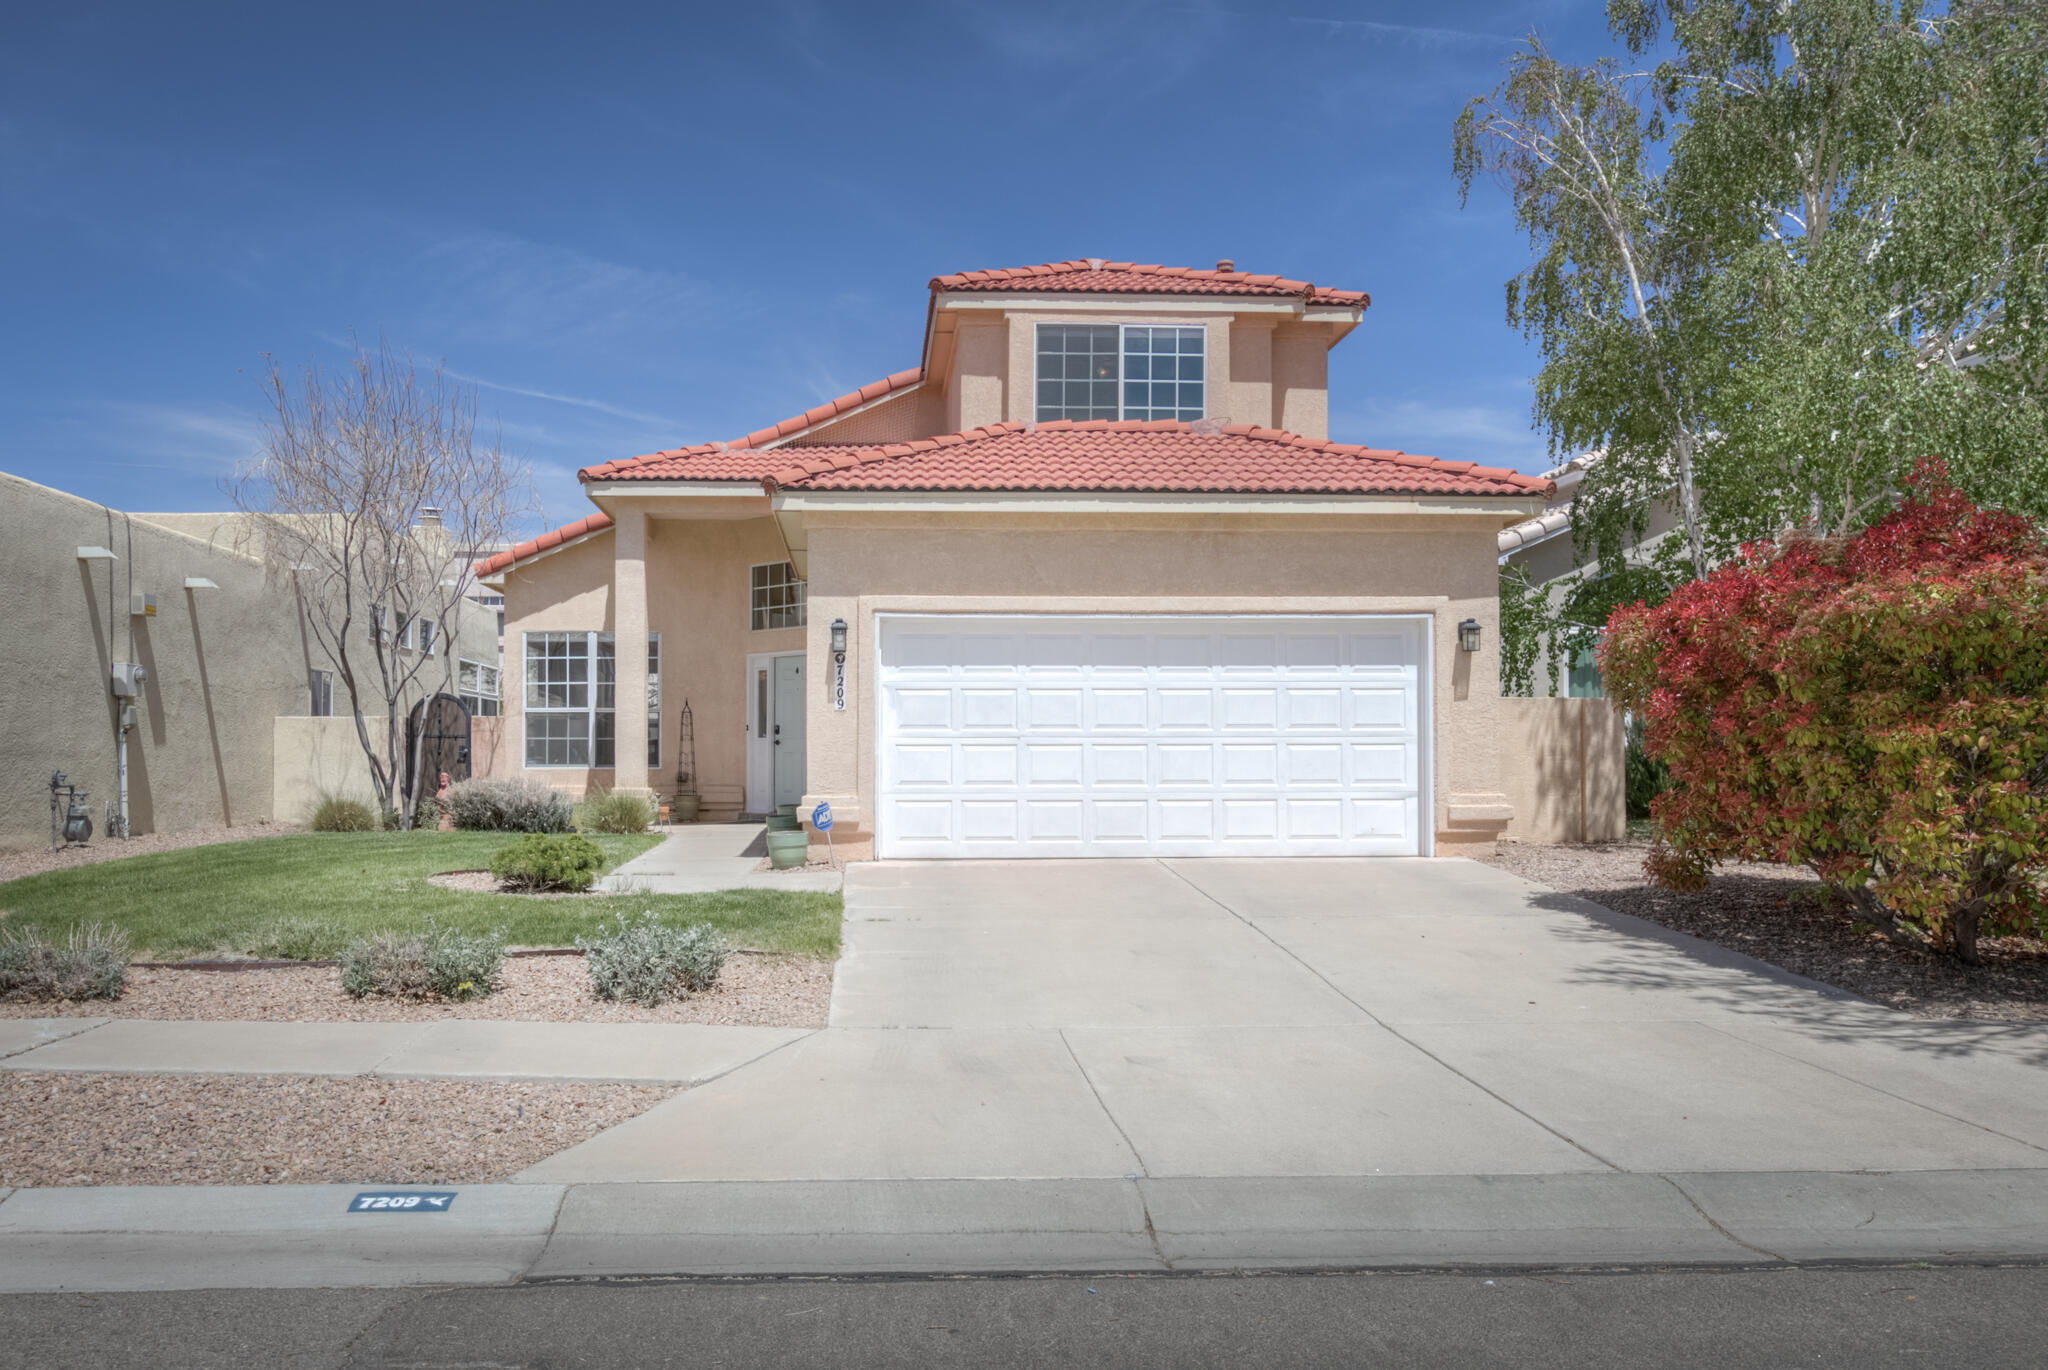 Don't miss this Palomas Park Gem with all the updates!  Pass the beautiful park as you enter the neighborhood with only one entrance.  Close to restaurants, shopping, and three parks all within walking distance. Home features large kitchen with ample counter space, newer kitchen appliances installed Jan 2021, upgraded counter tops, two living areas, large windows, formal dining room, 3 bedroom upstairs, all three bathrooms have been remodeled/refreshed within the last three years including remodeled master bath with freestanding bathtub plus walk in shower, master bedroom has balcony with mountain views. Great outdoor living for all your entertaining in the lush backyard.  Call today for your private showing.